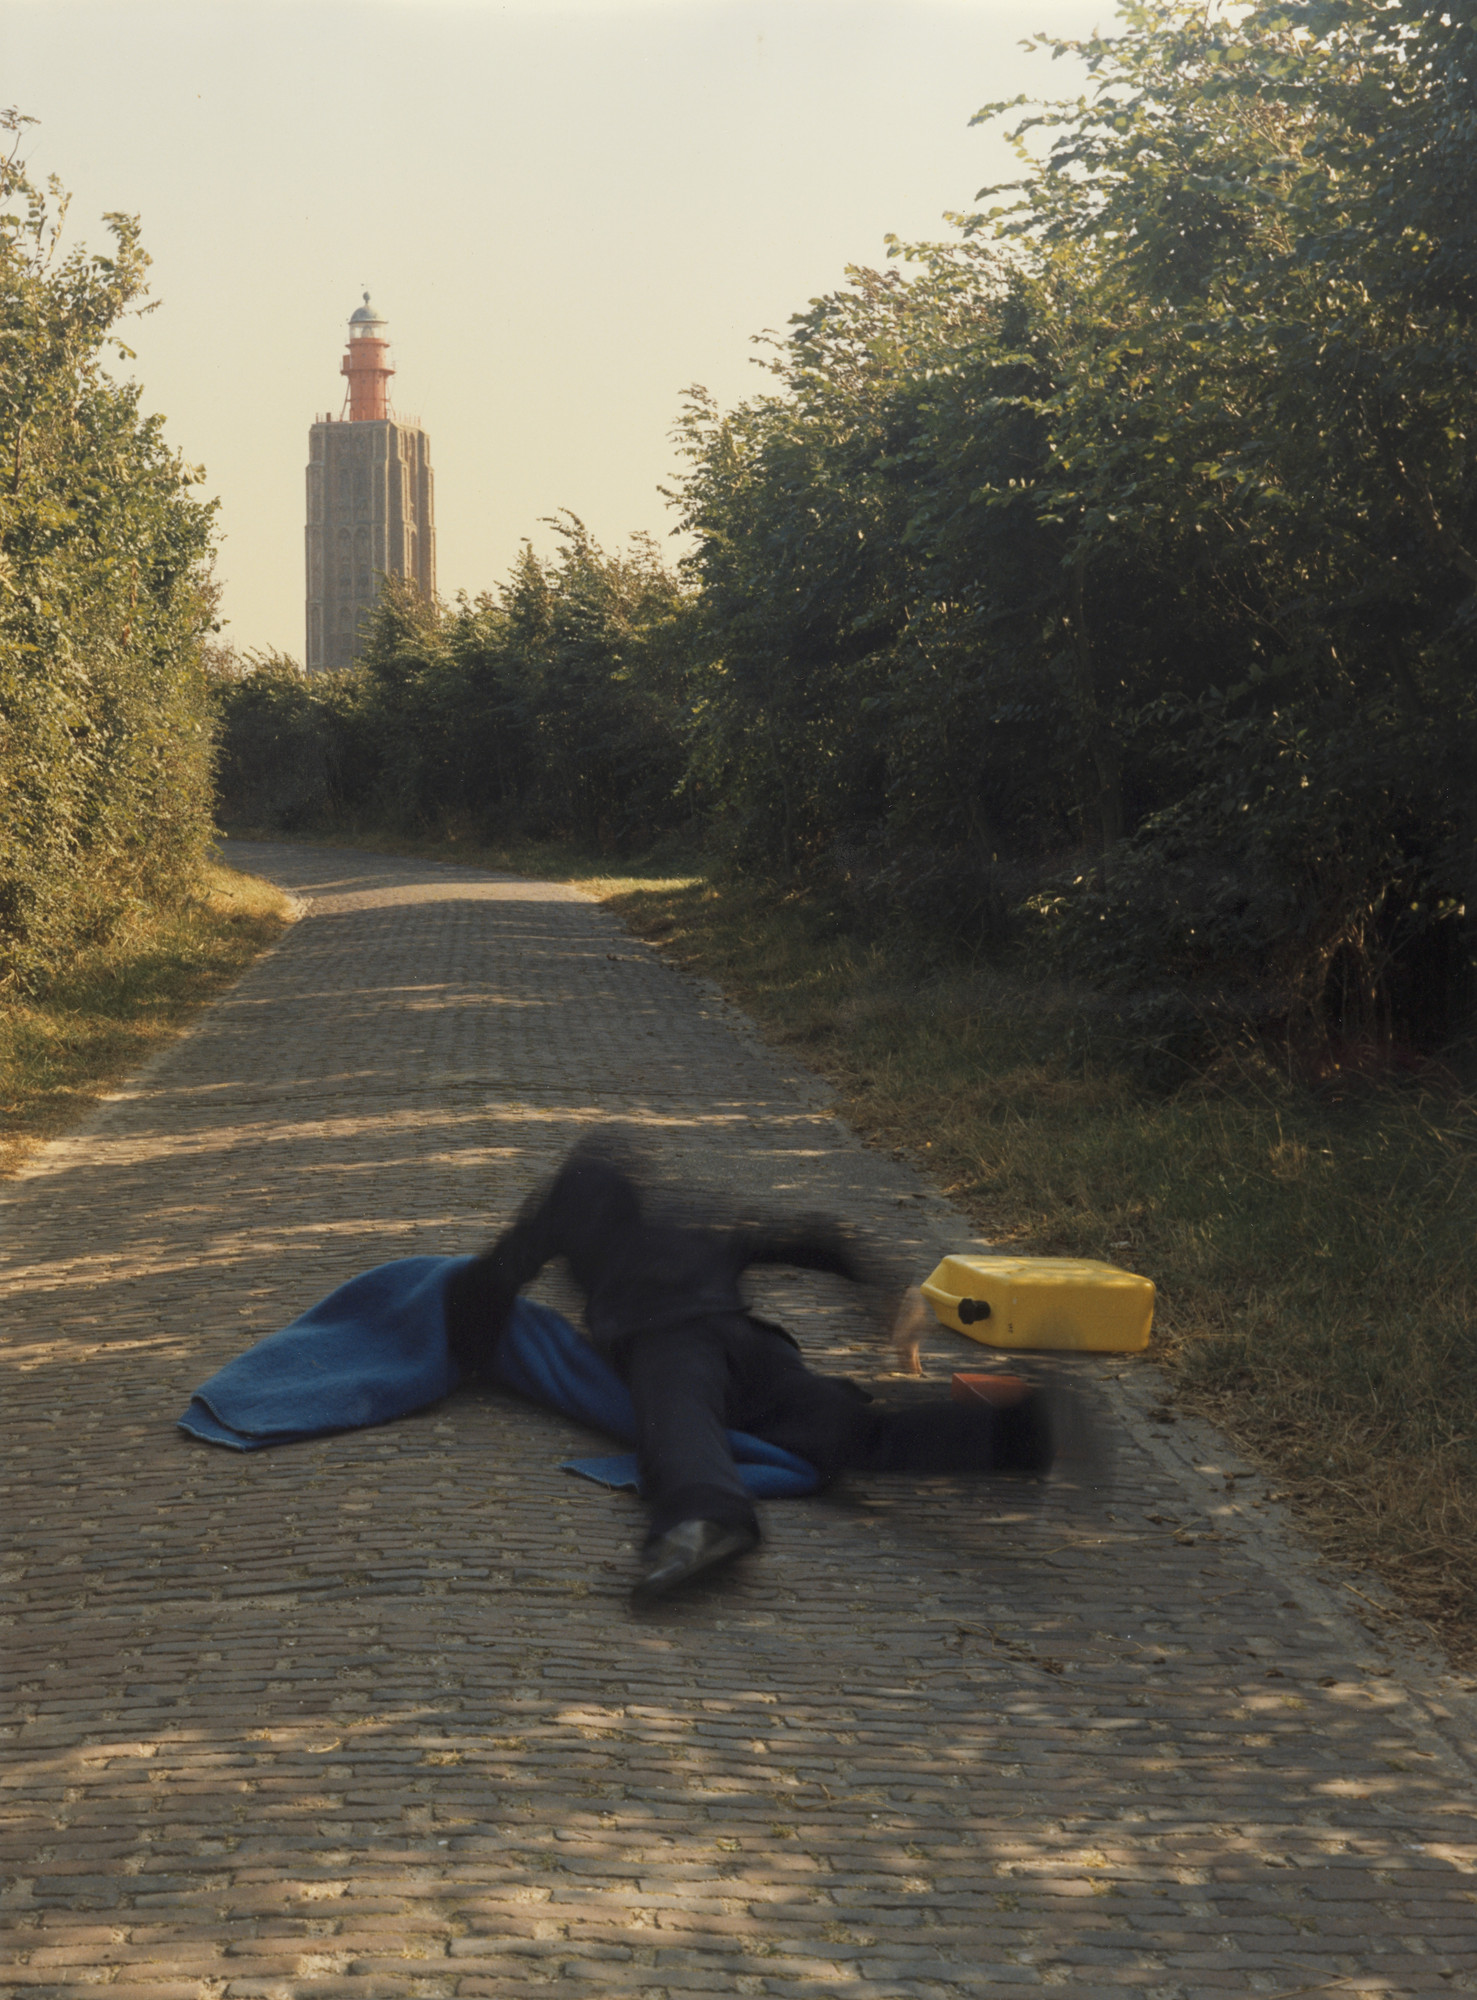 Bas Jan Ader. Pitfall On the Way To a New Neo-Plasticism, Westkapelle, Holland. 1971